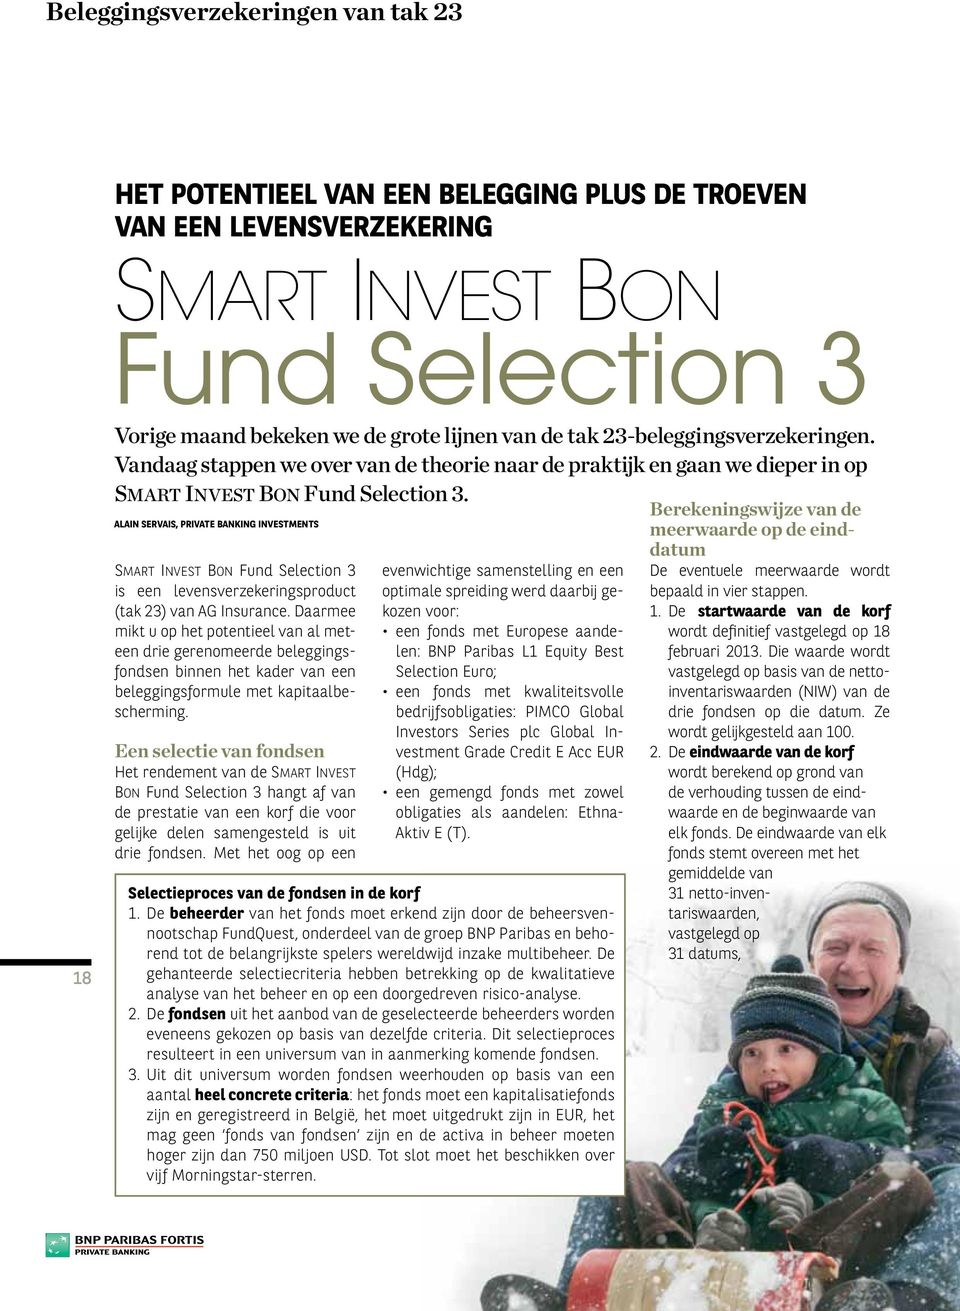 ALAIN SERVAIS, PRIVATE BANKING INVESTMENTS SMART INVEST BON Fund Selection 3 is een levensverzekeringsproduct (tak 23) van AG Insurance.